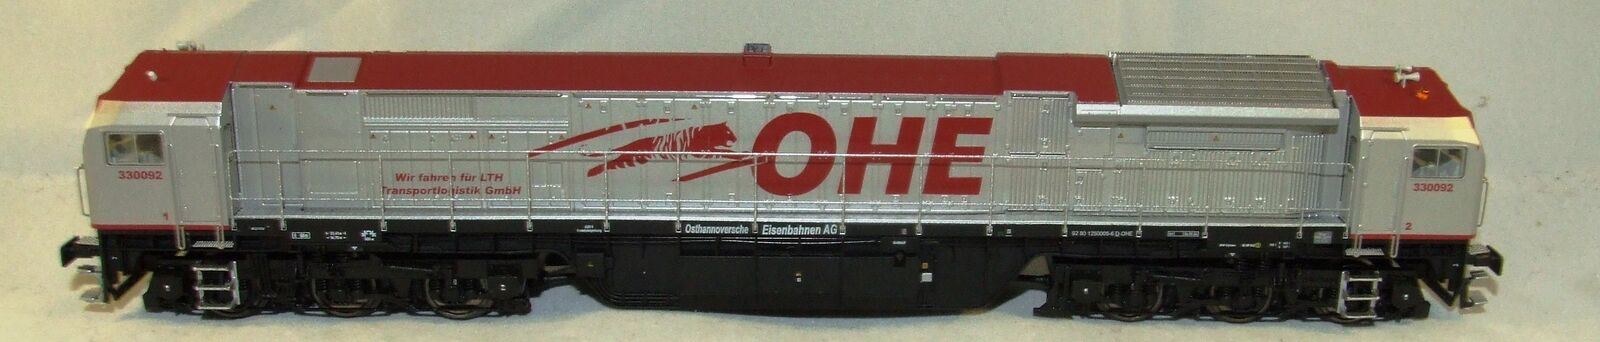 Mehano HO 63461 Diesellok Red Tiger der OHE in DC